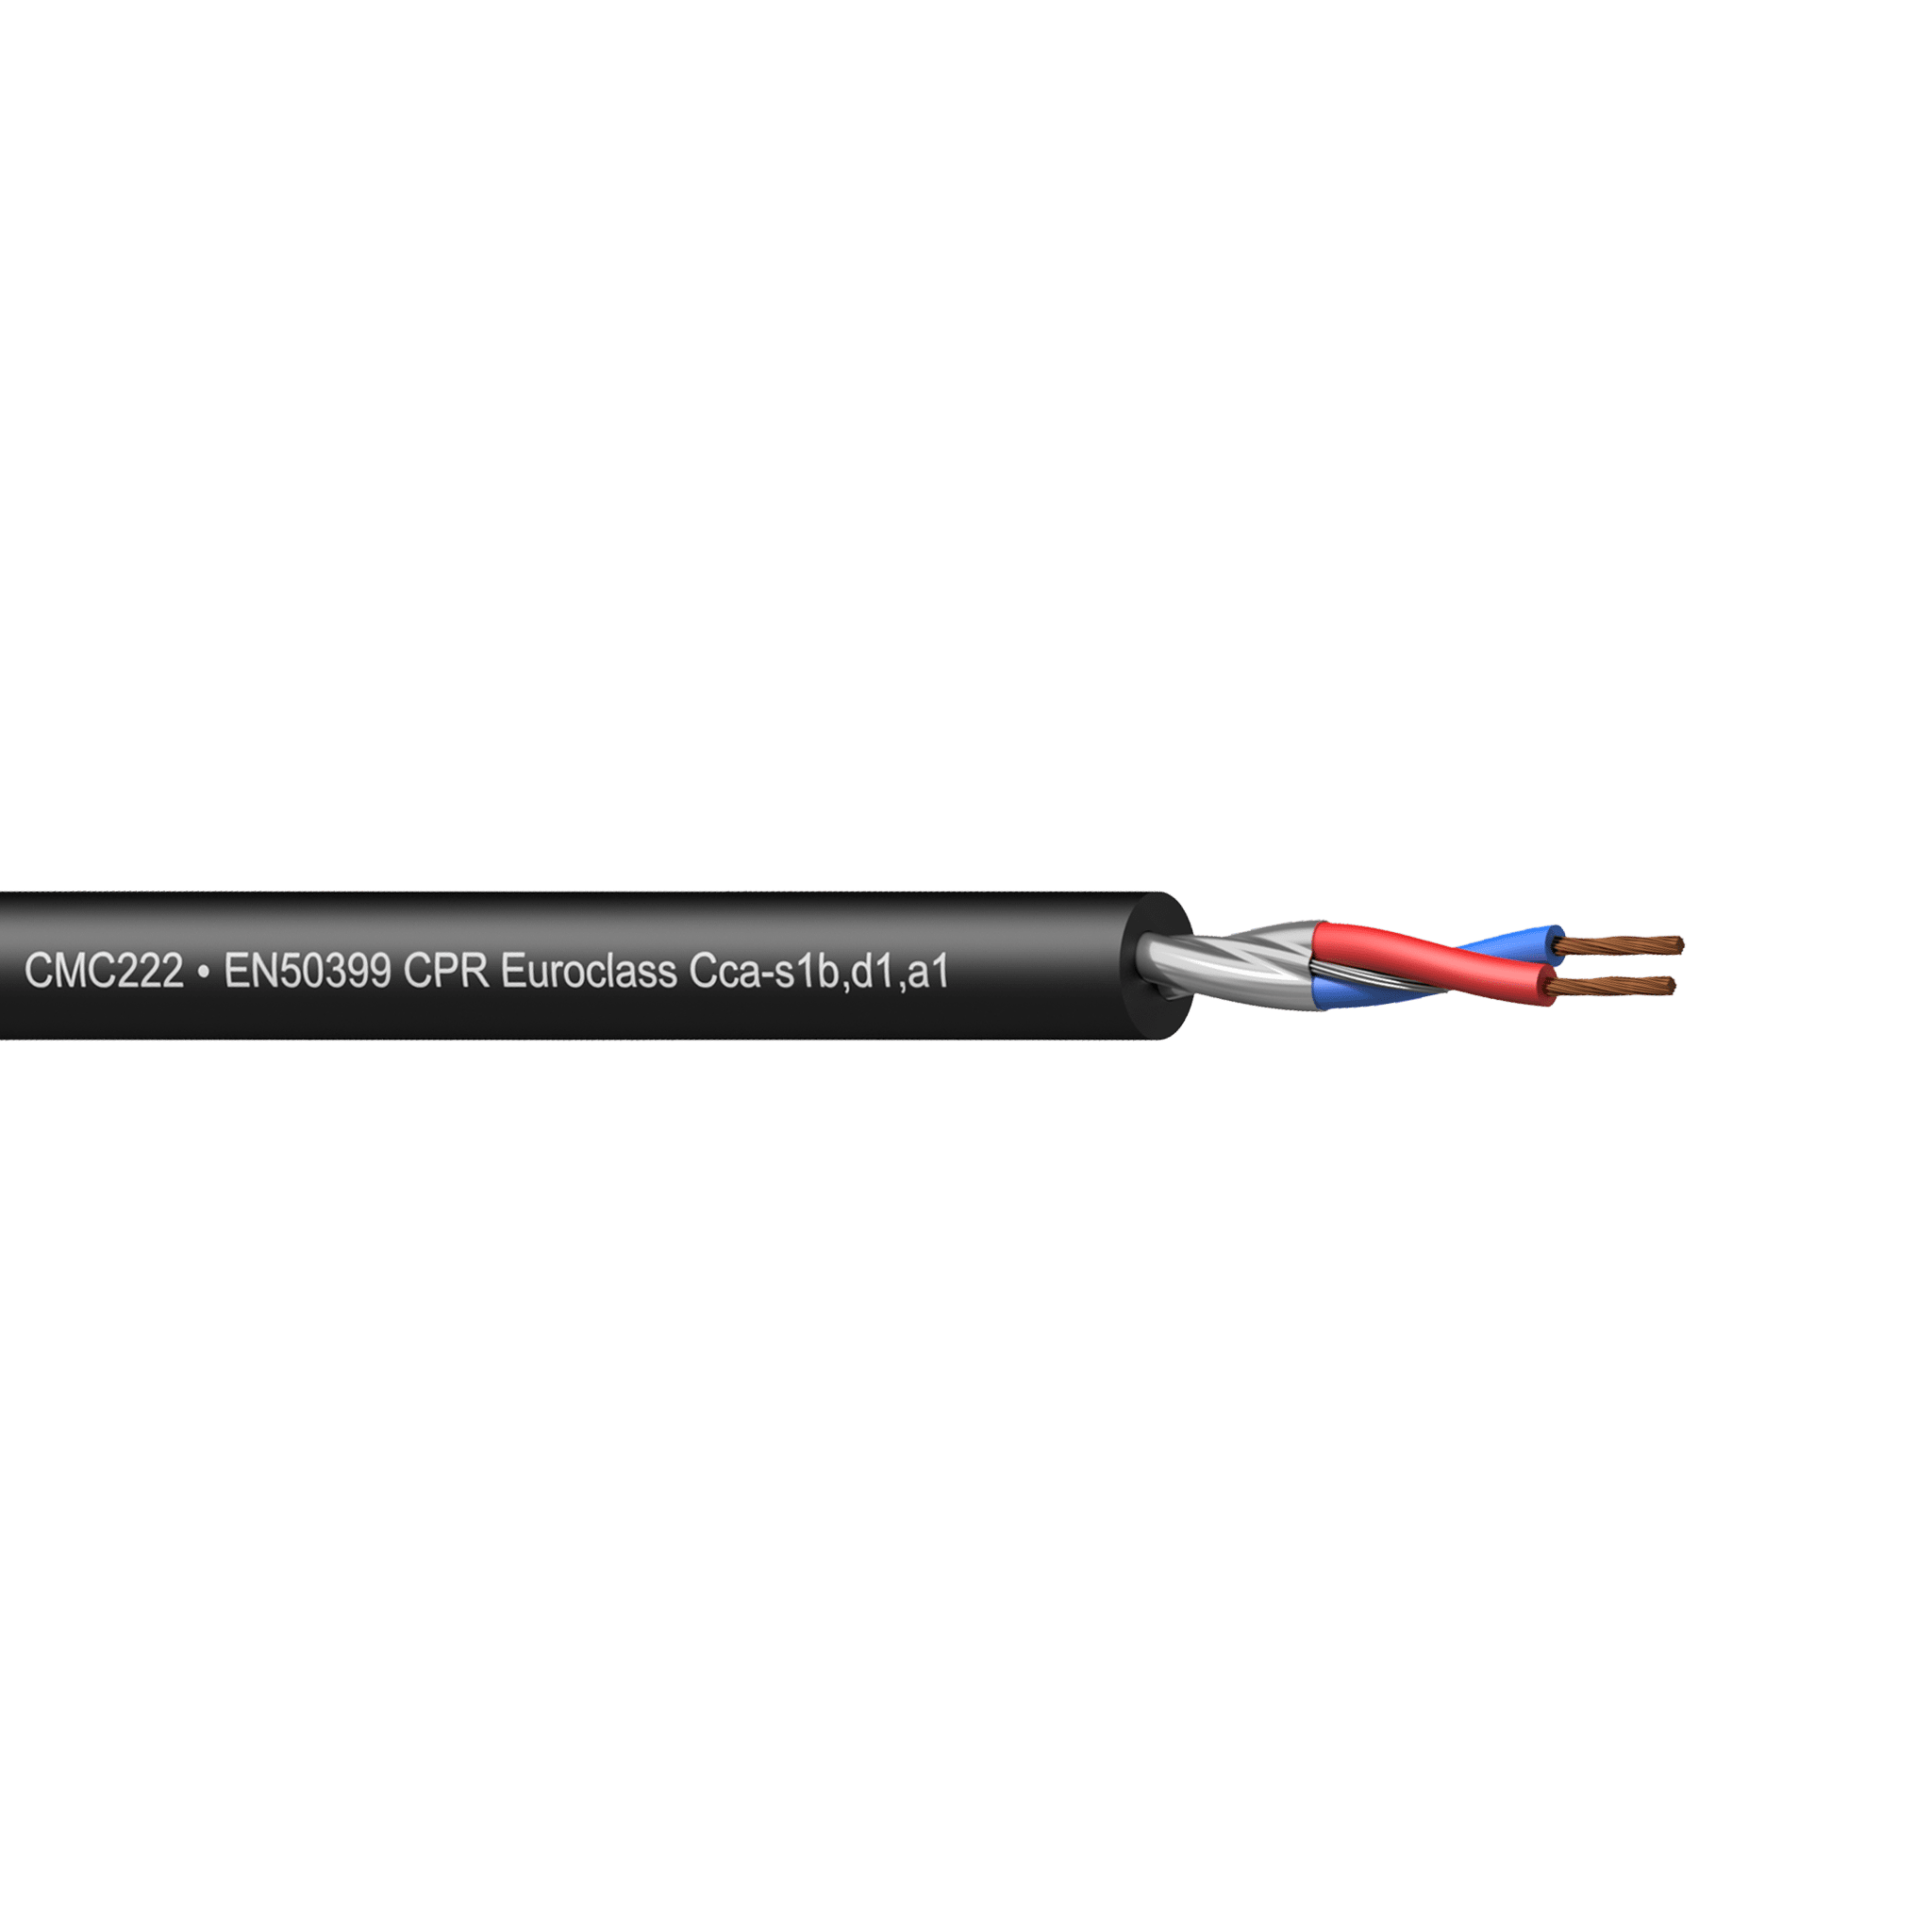 CMC222-CCA - Balanced microphone cable - flex 2 x 0.34 mm ² - 22 AWG - EN50399 CPR Euroclass Cca-s1b,d1,a1